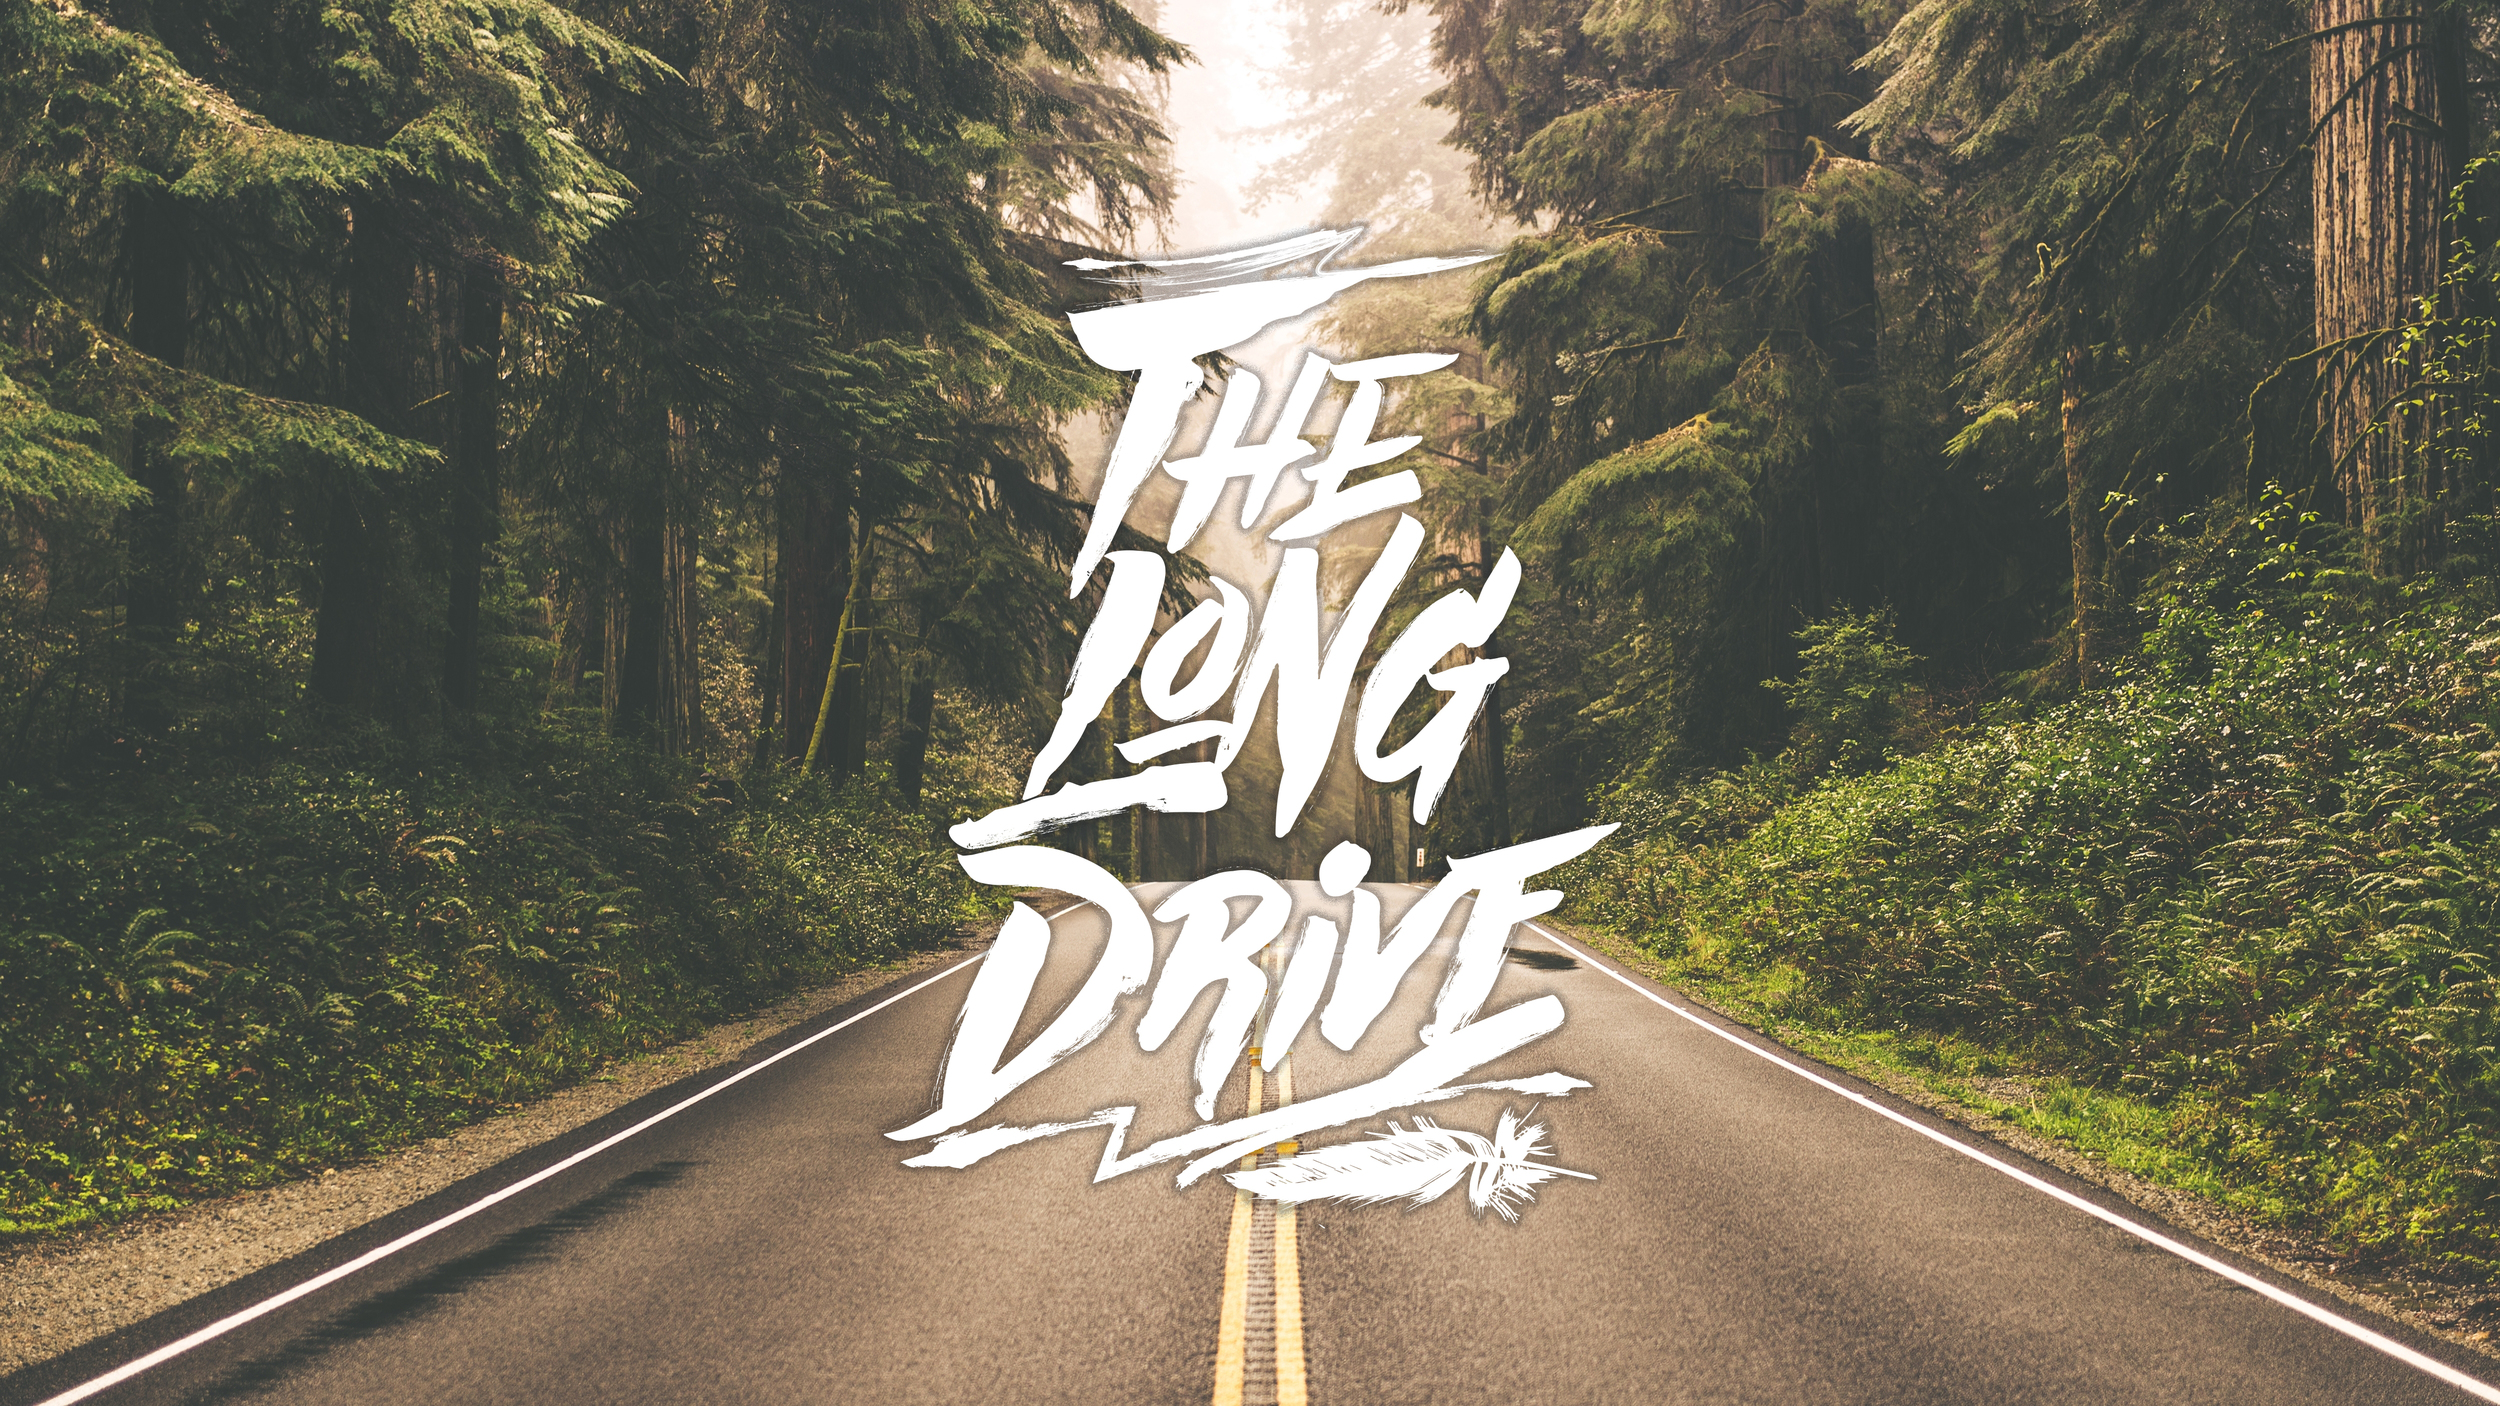 THE_LONG DRIVE_Web res v1.jpg